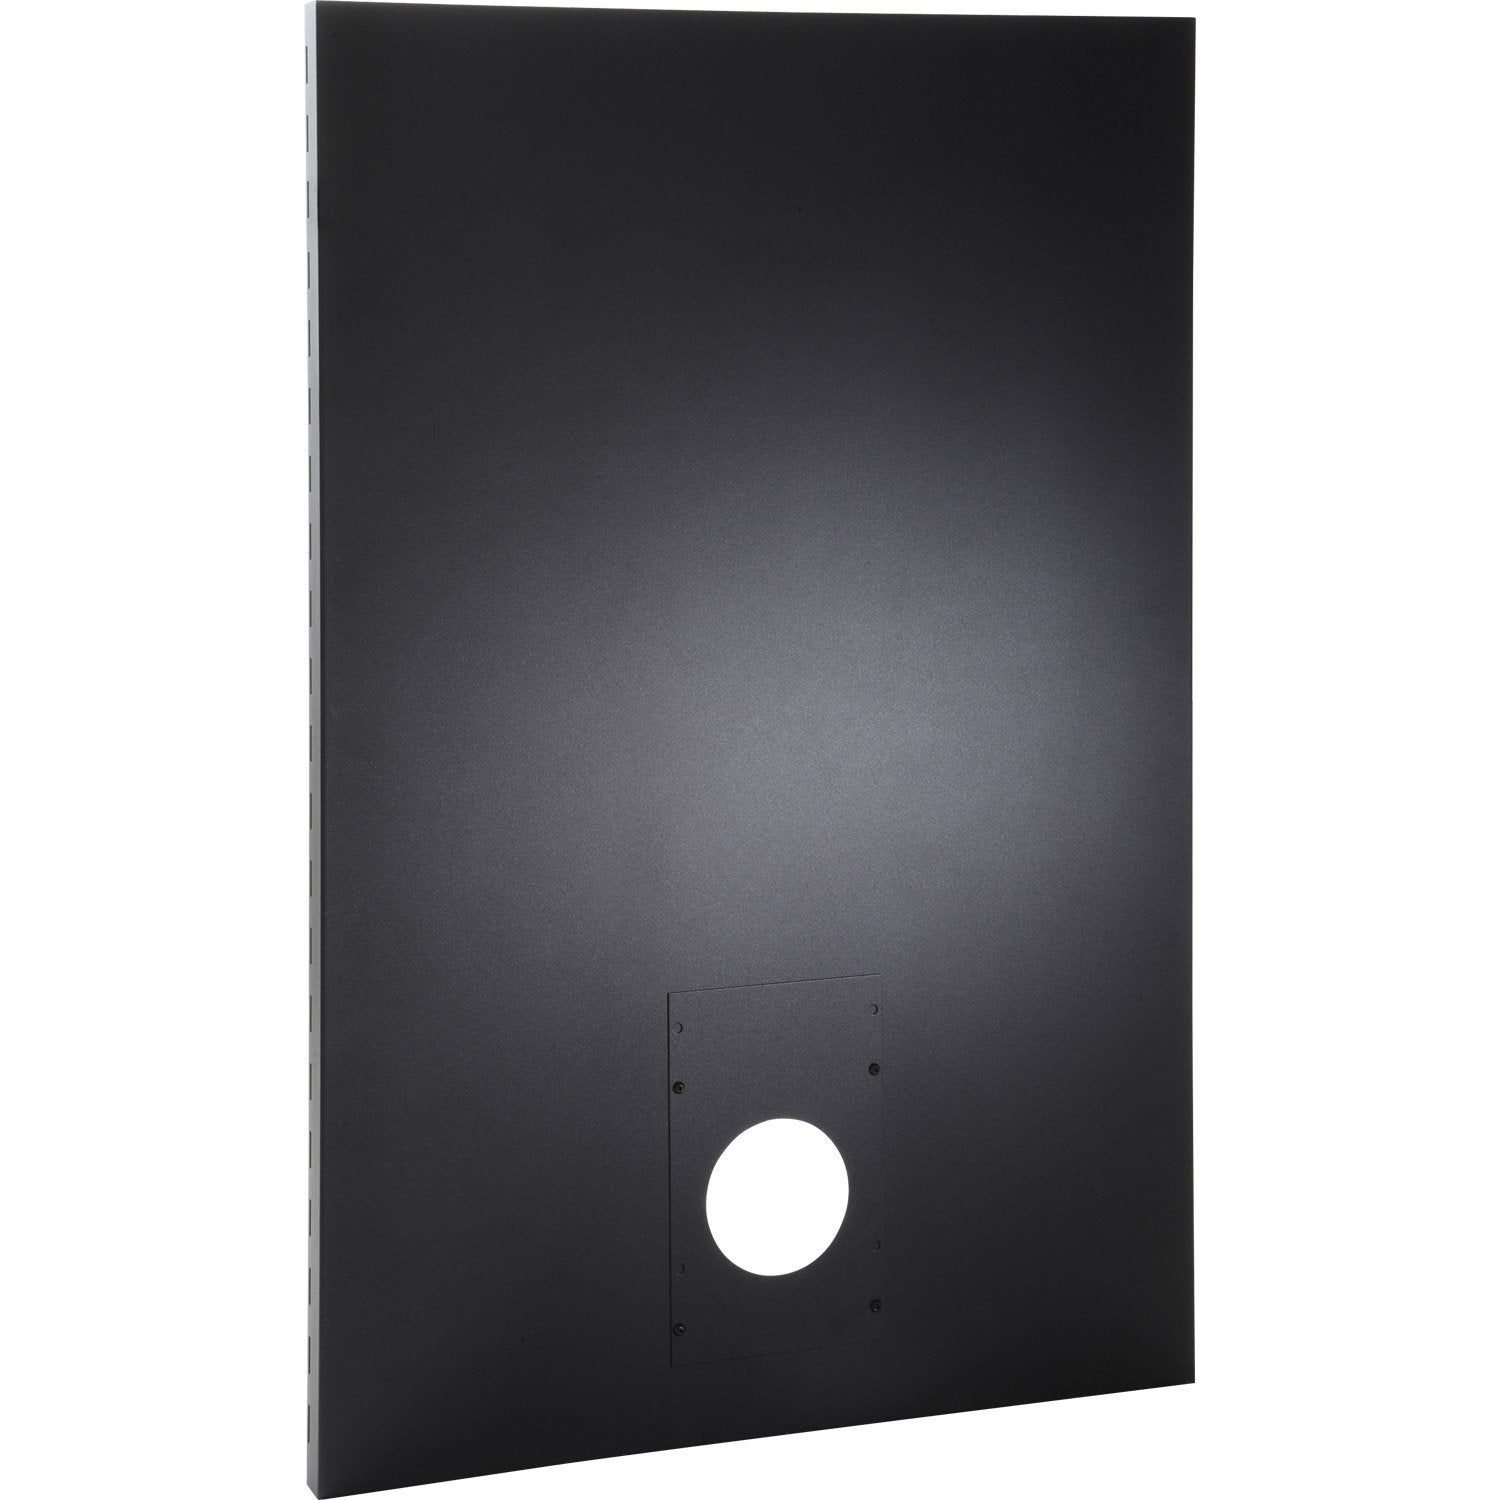 plaque de protection murale equation air frais cm leroy merlin. Black Bedroom Furniture Sets. Home Design Ideas